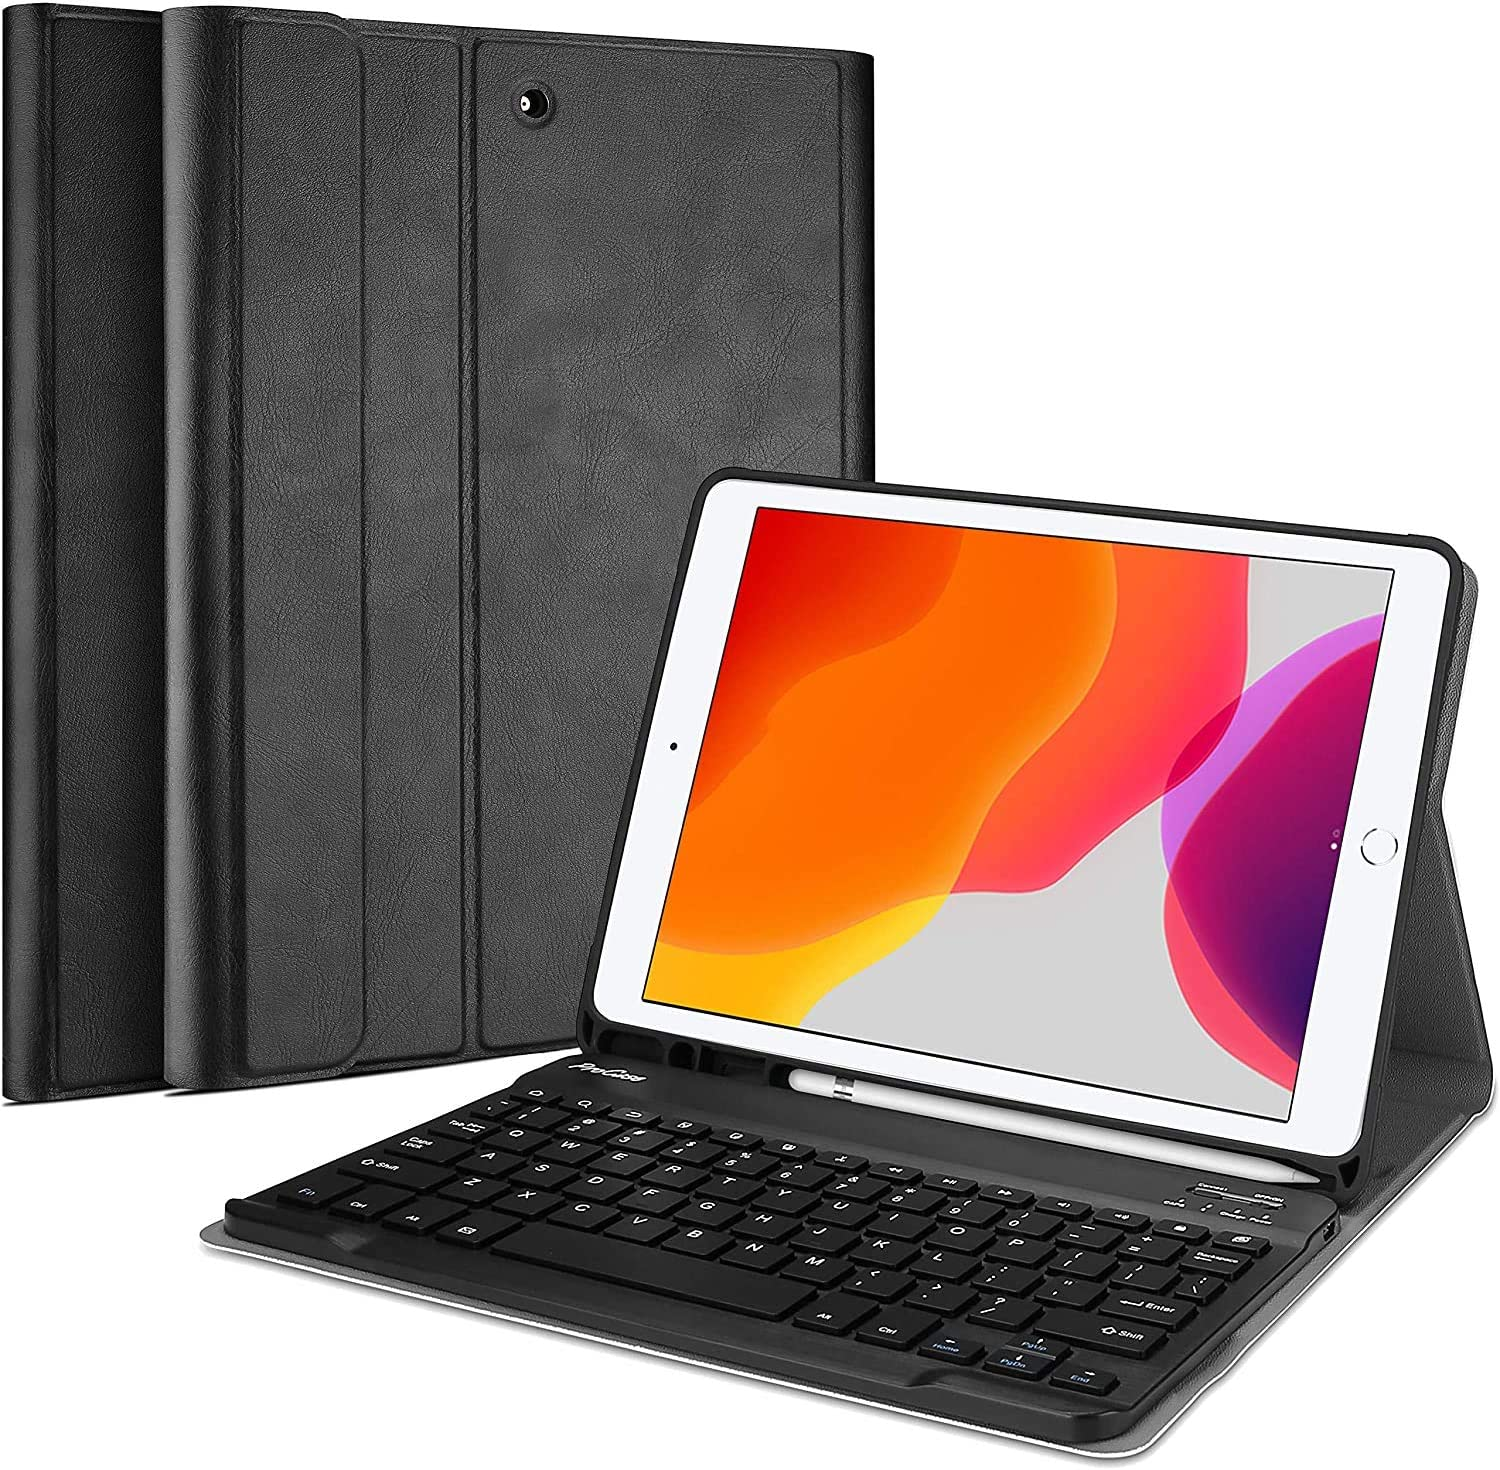 ProCase New iPad 10.2 8th 7th Generation 2020 2019 Keyboard Case, Slim Leather Folio Smart Cover with Magnetically Detachable Wireless Keyboard for 10.2 inch iPad 8 / iPad 7 -Black